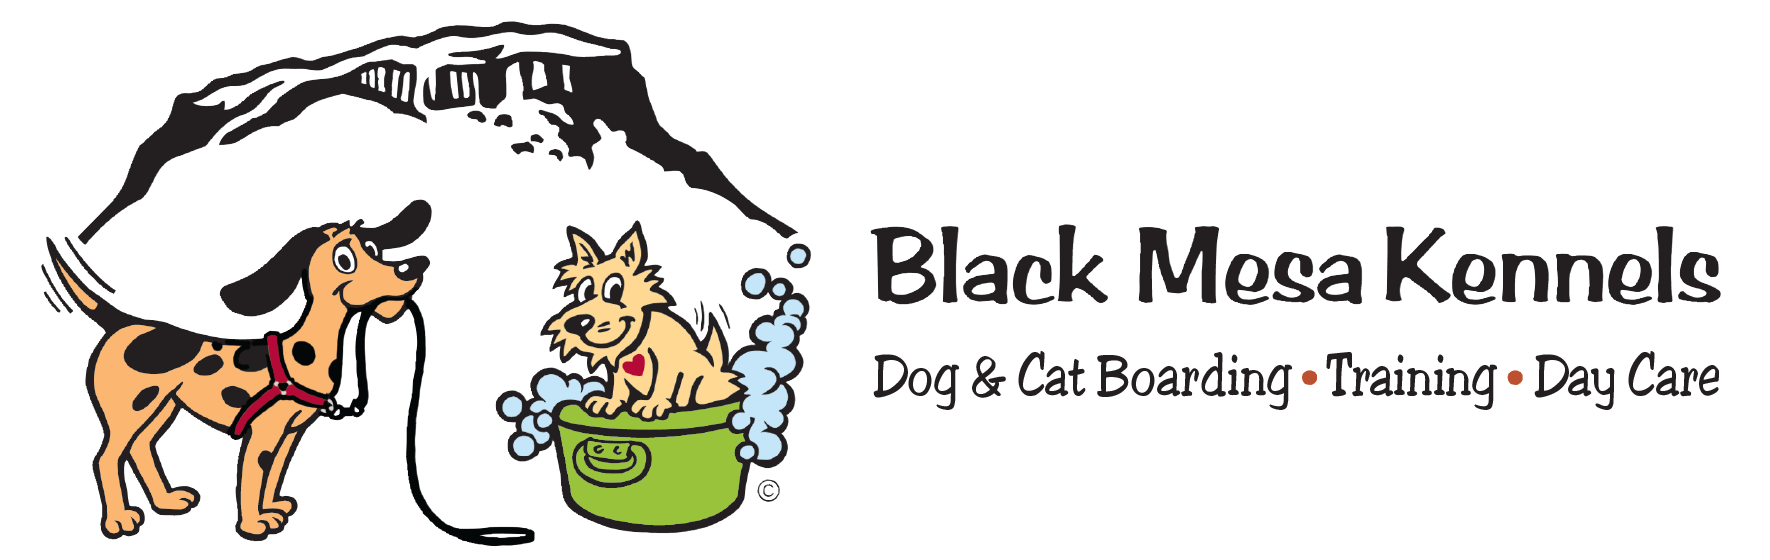 Black Mesa Kennels Boarding Training Day Care